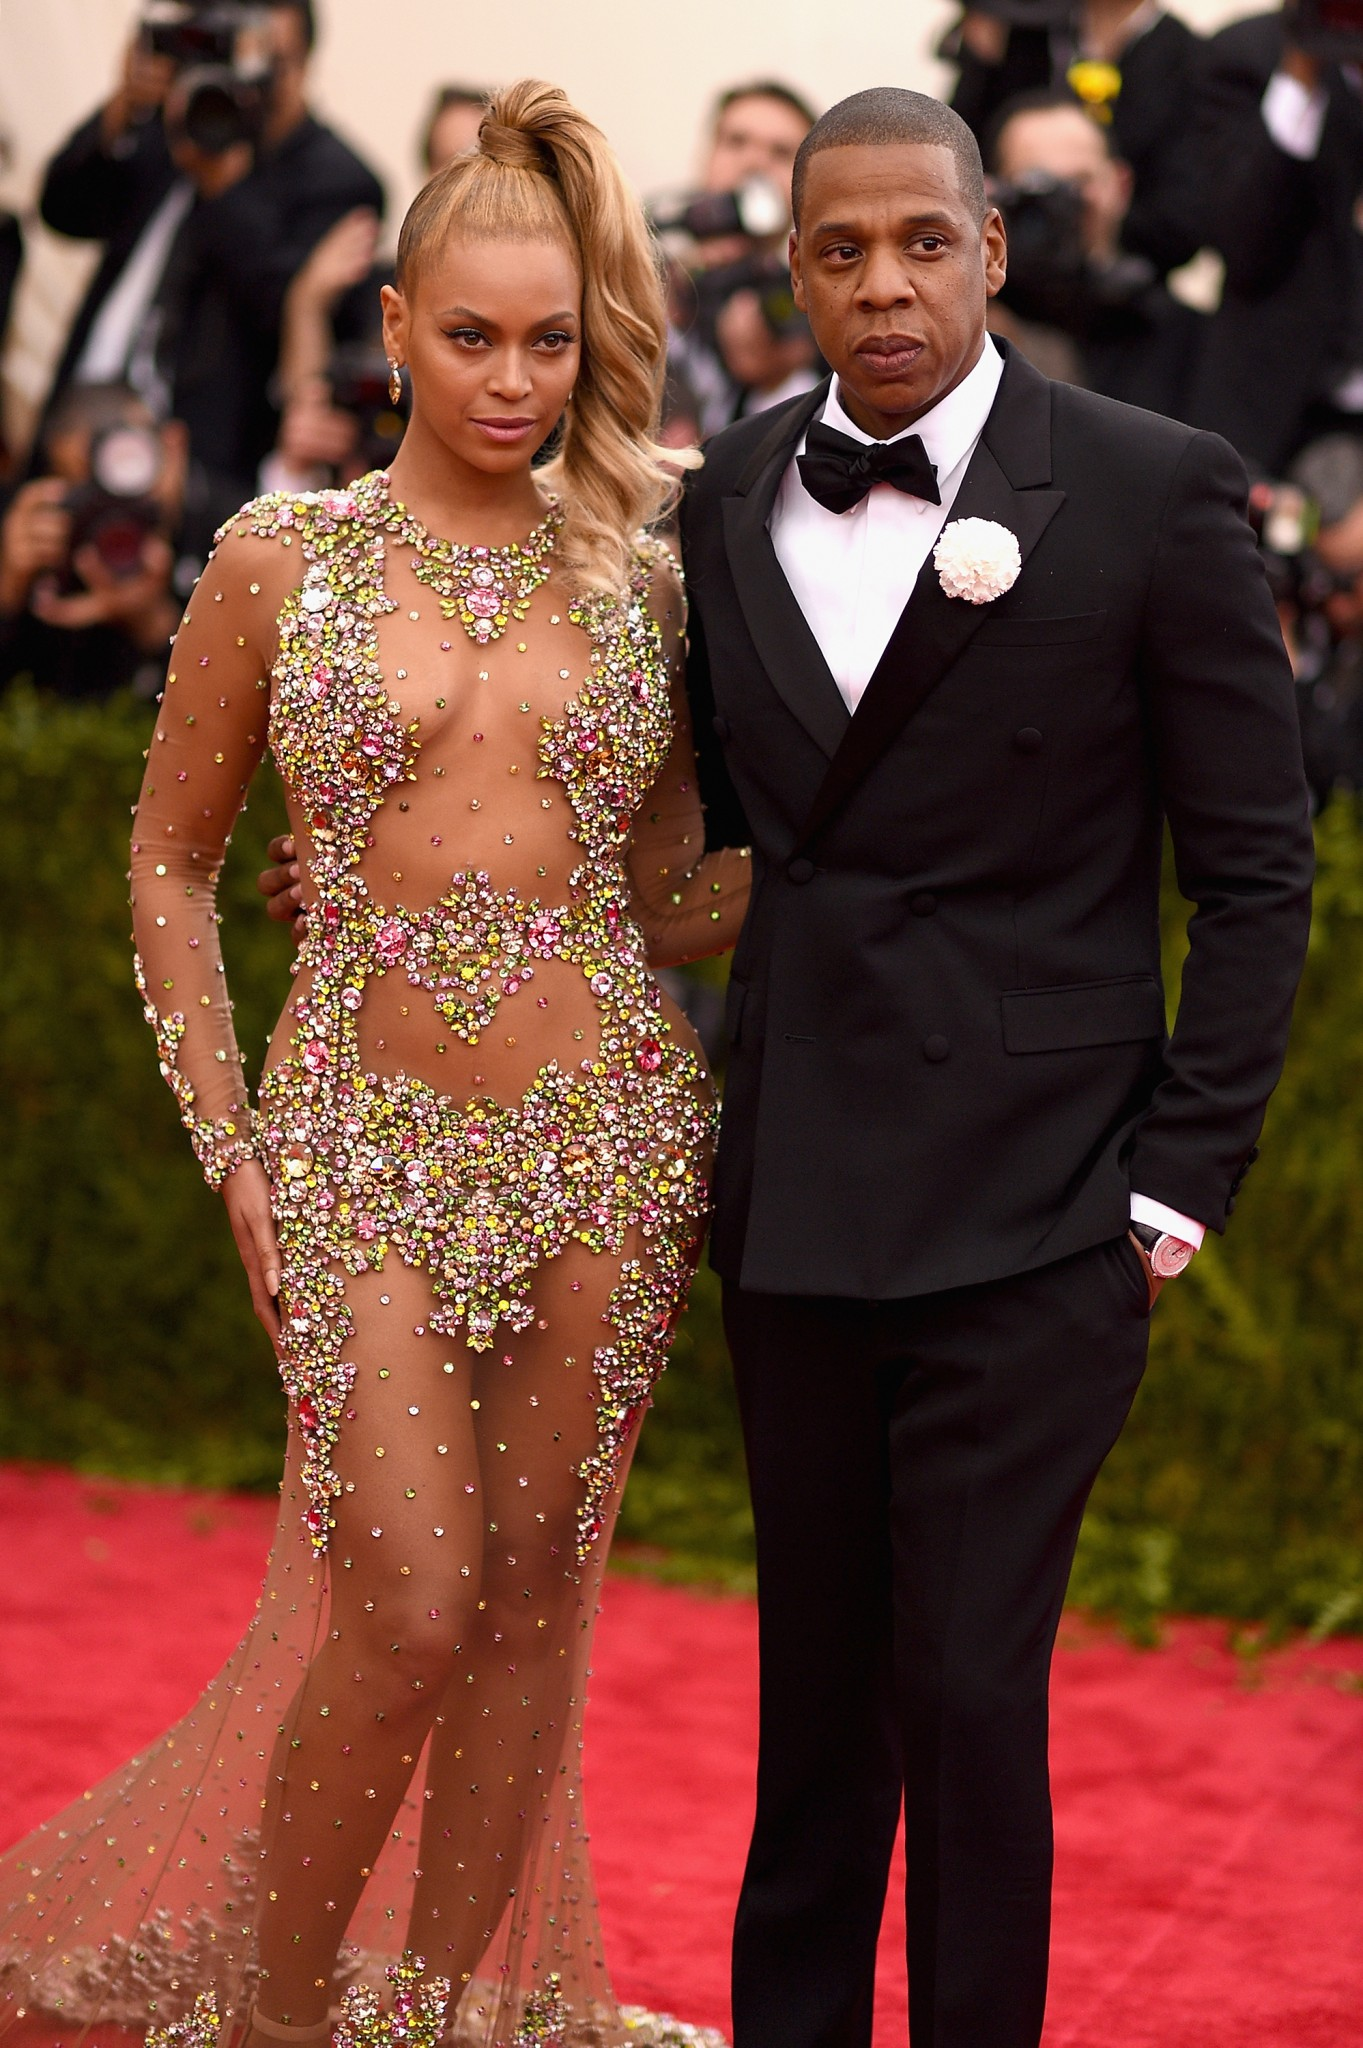 beyonce-see-through-dress-met-gala-10